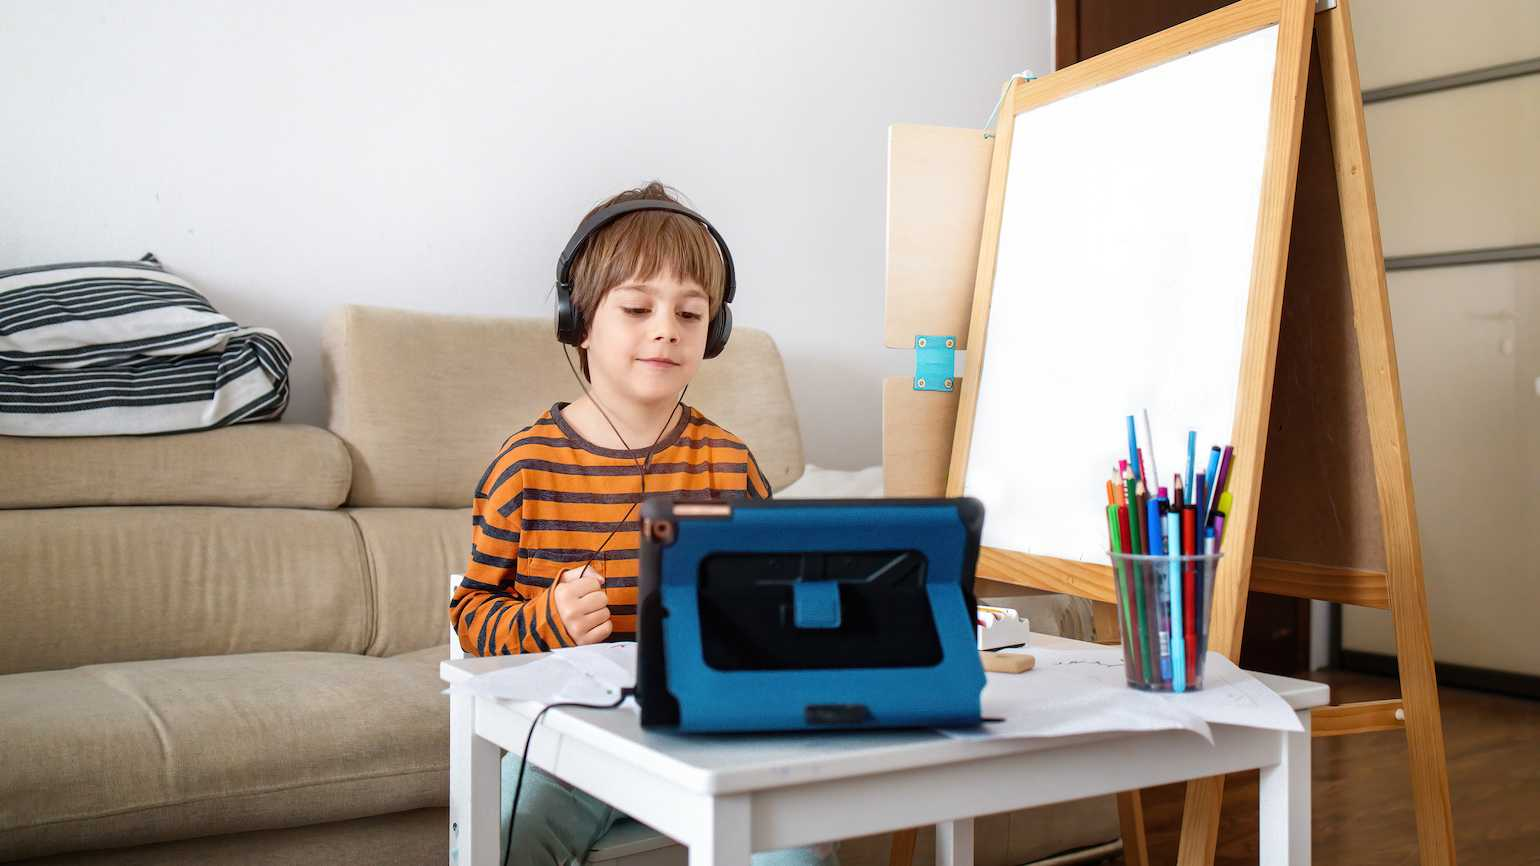 Positive tips for parents and remote learning